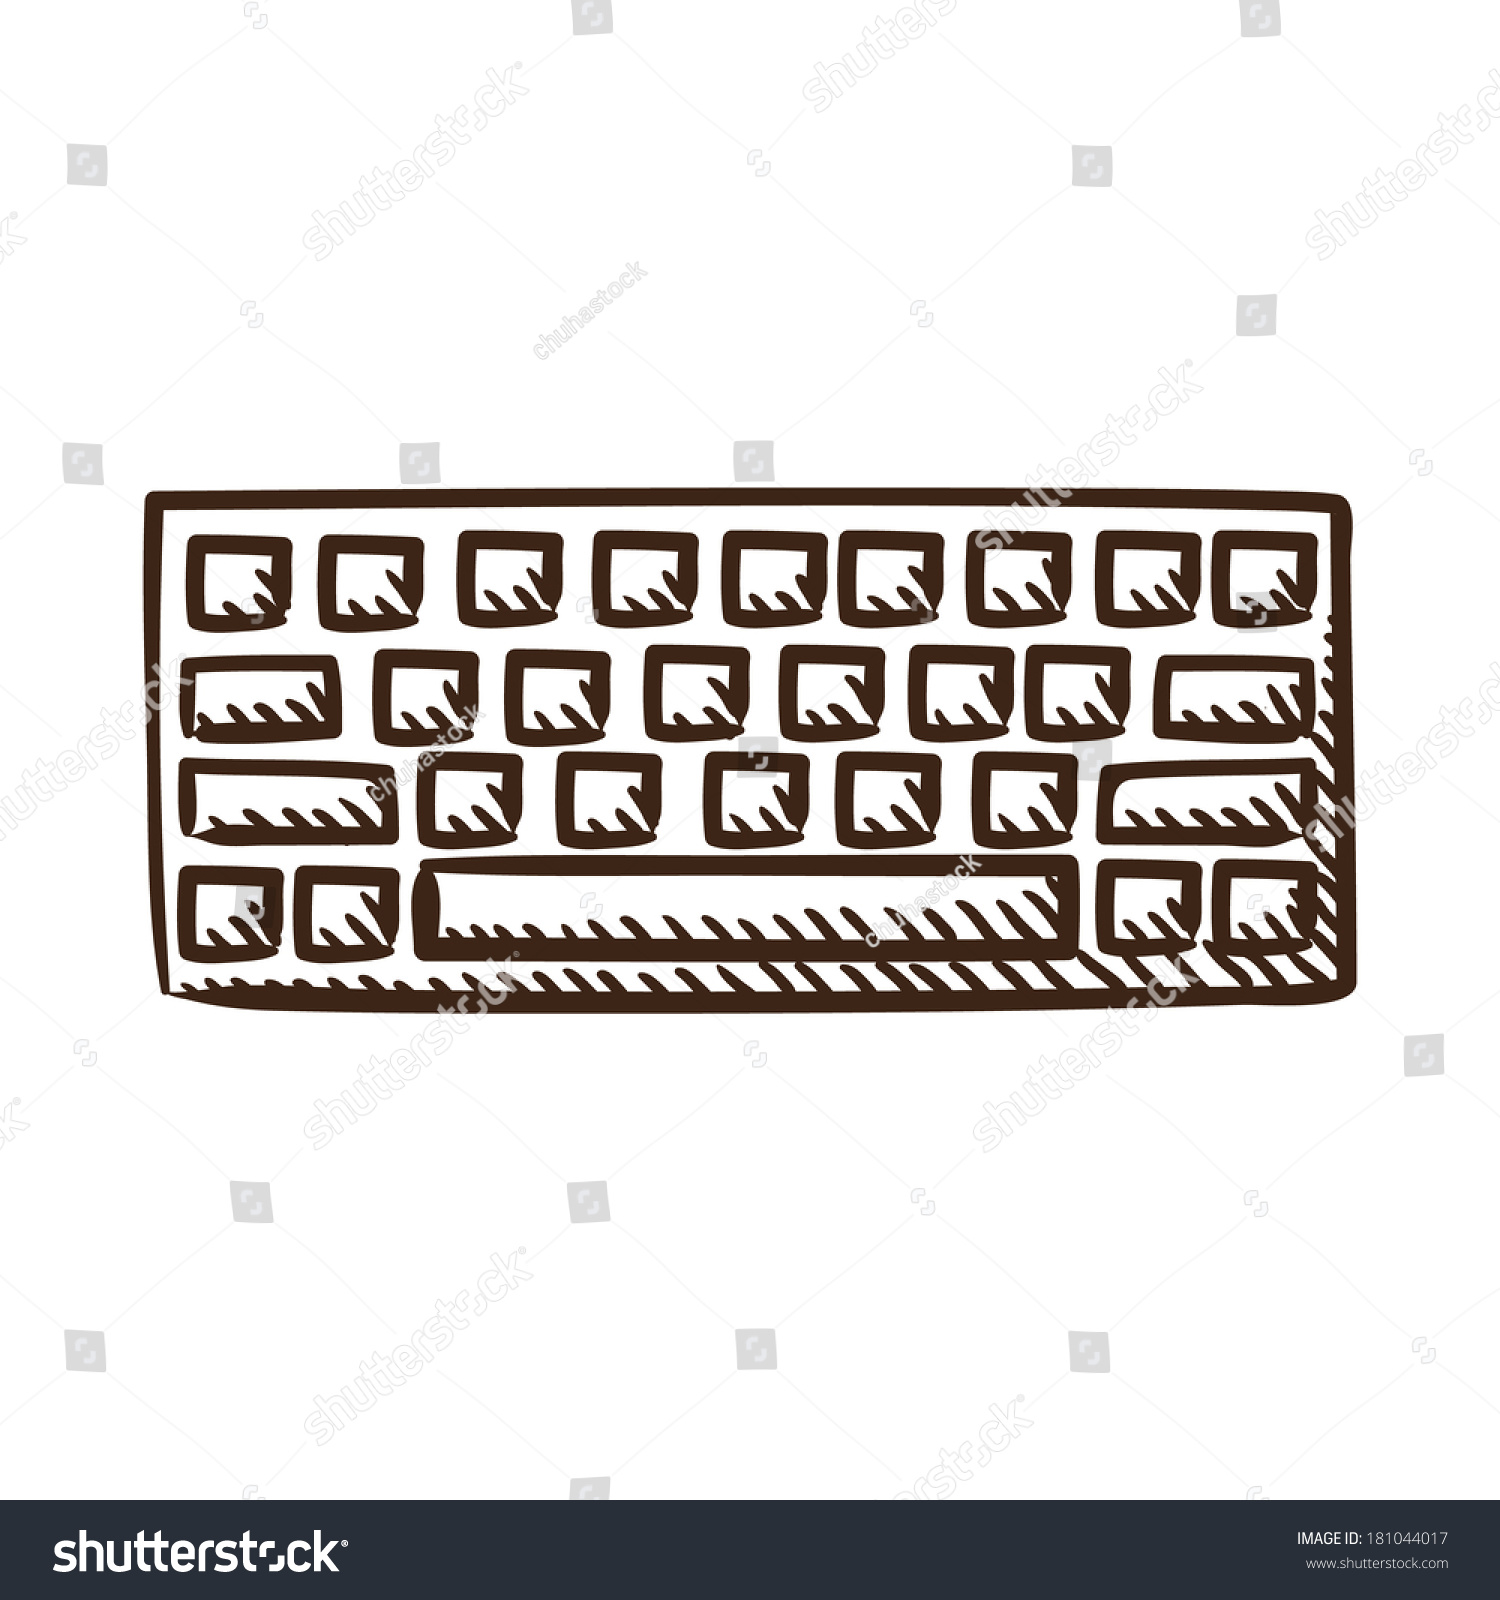 Computer keyboard symbol isolated sketch icon stock vector computer keyboard symbol isolated sketch icon pictogram eps 10 vector illustration buycottarizona Gallery